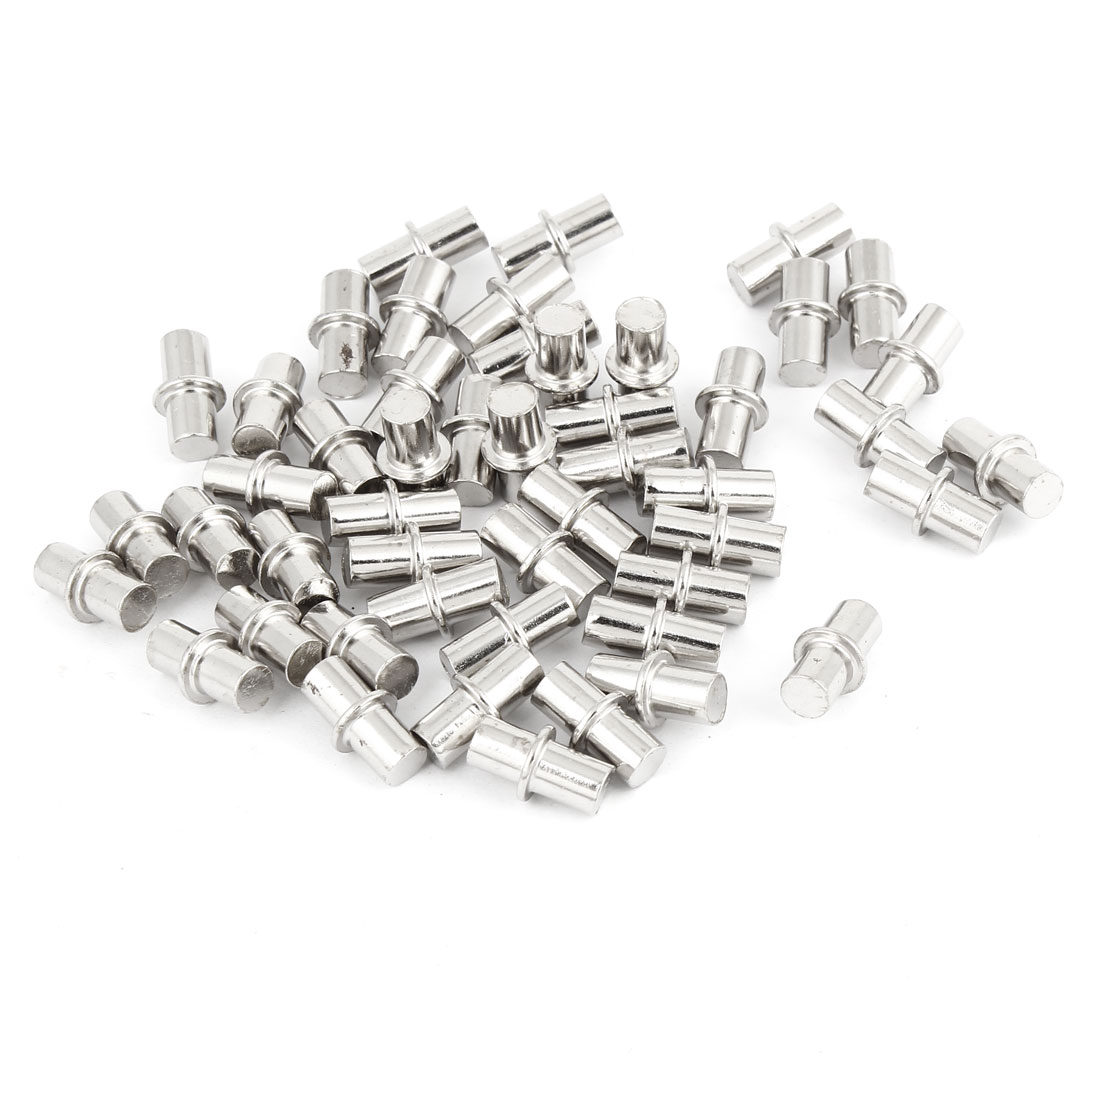 50PCS Furnitures Shelf Support Pins Studs Metal Peg Silver Tone